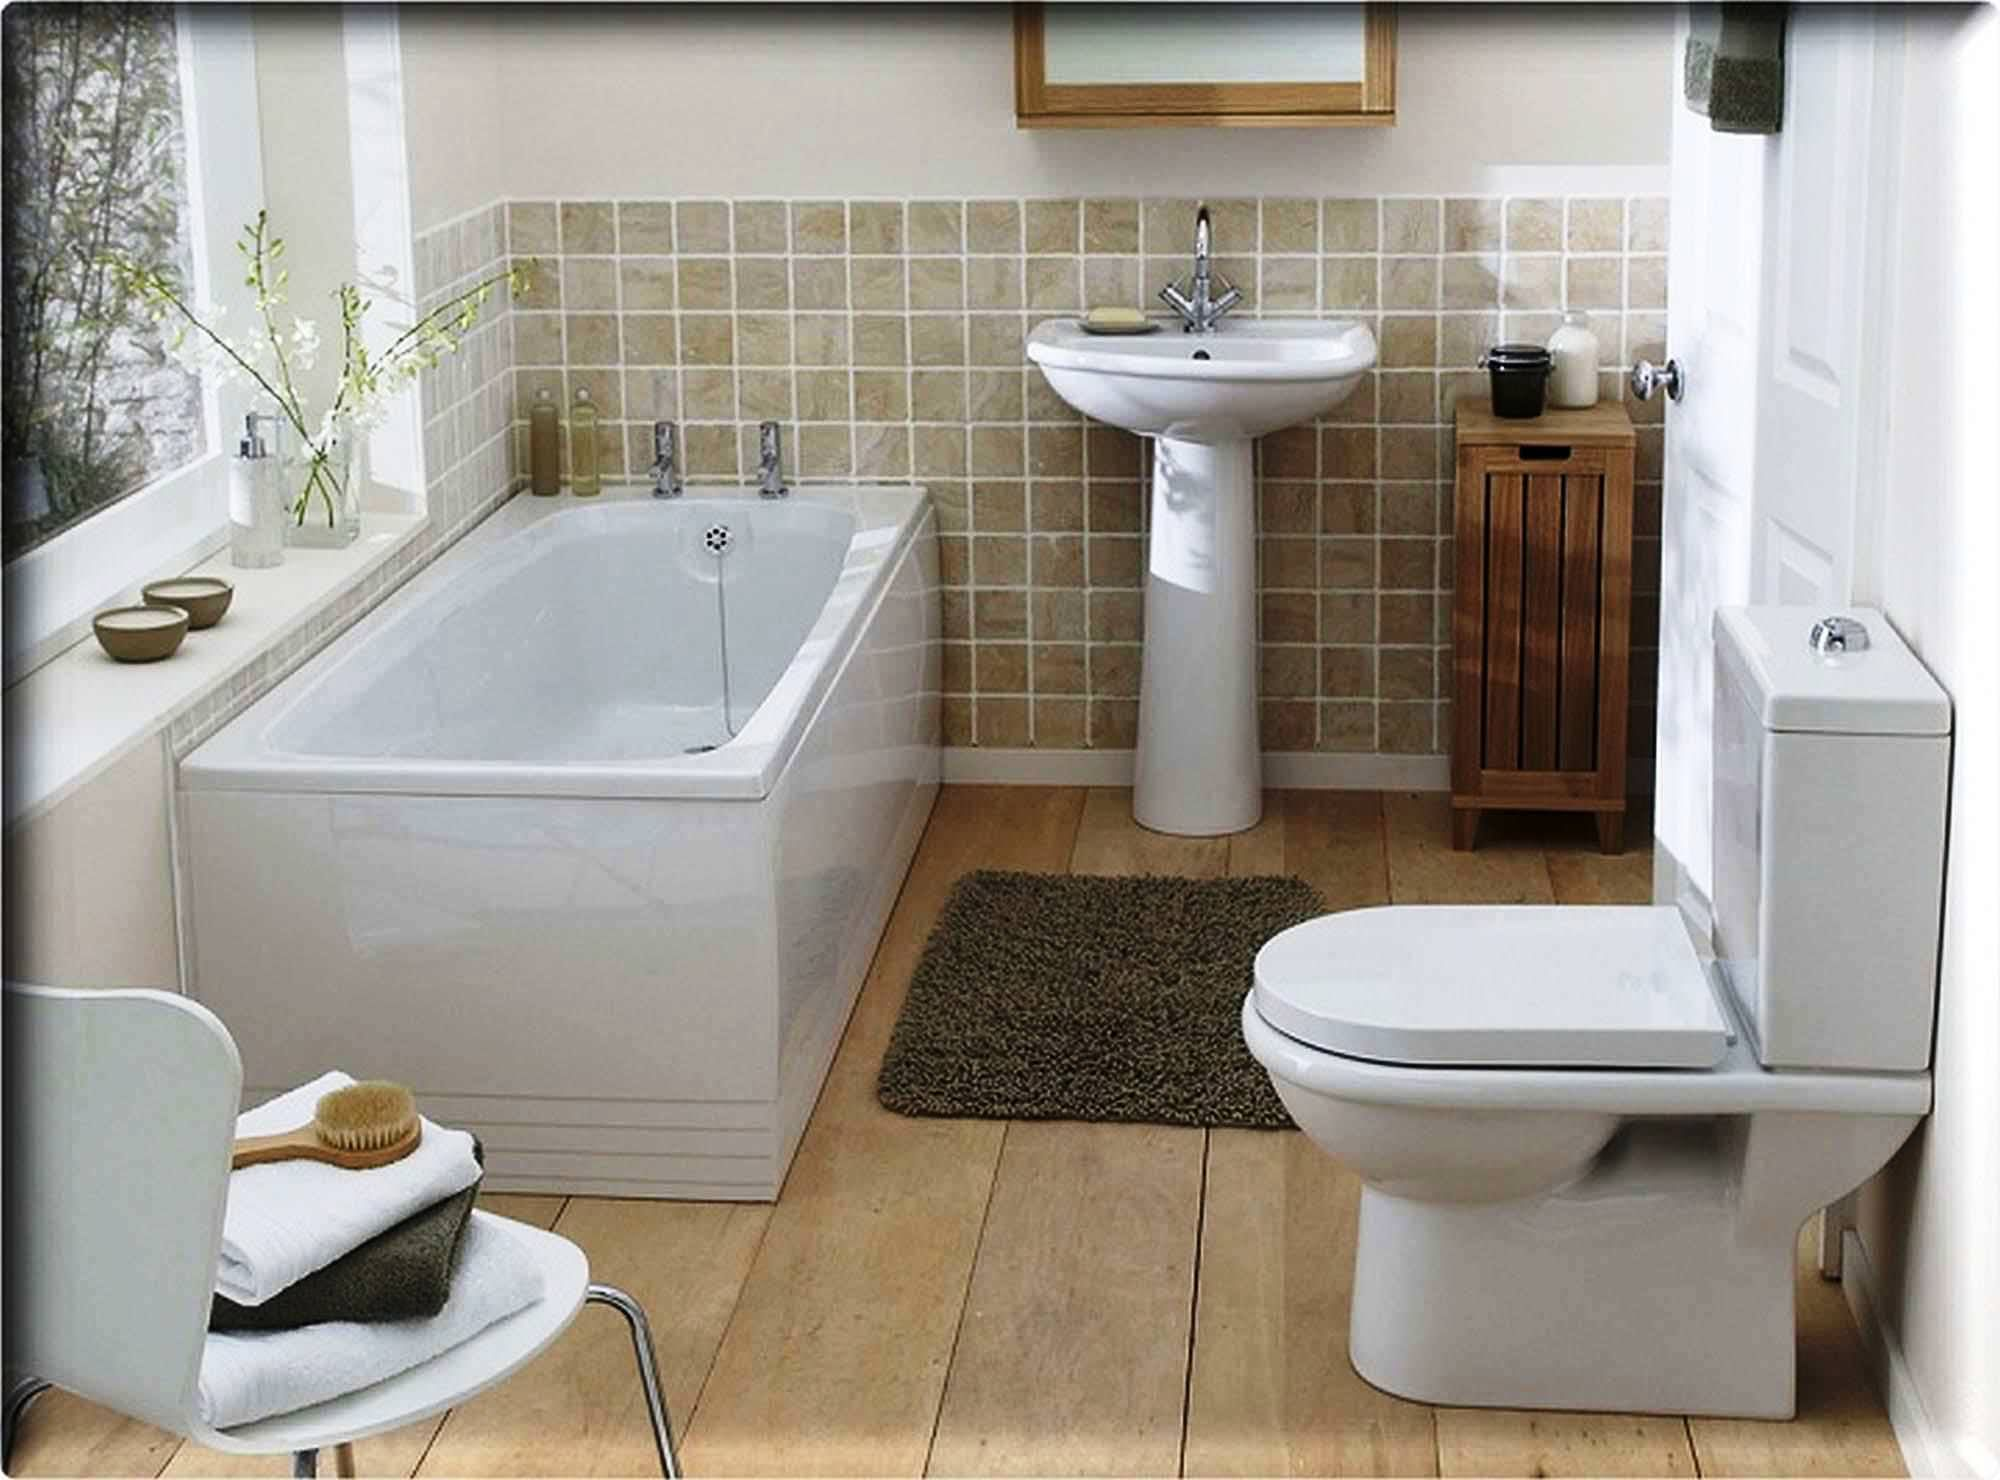 Image Result For 5x8 Bathroom With Tub Layout Bathroom Remodel Cost Small Space Bathroom Full Bathroom Remodel